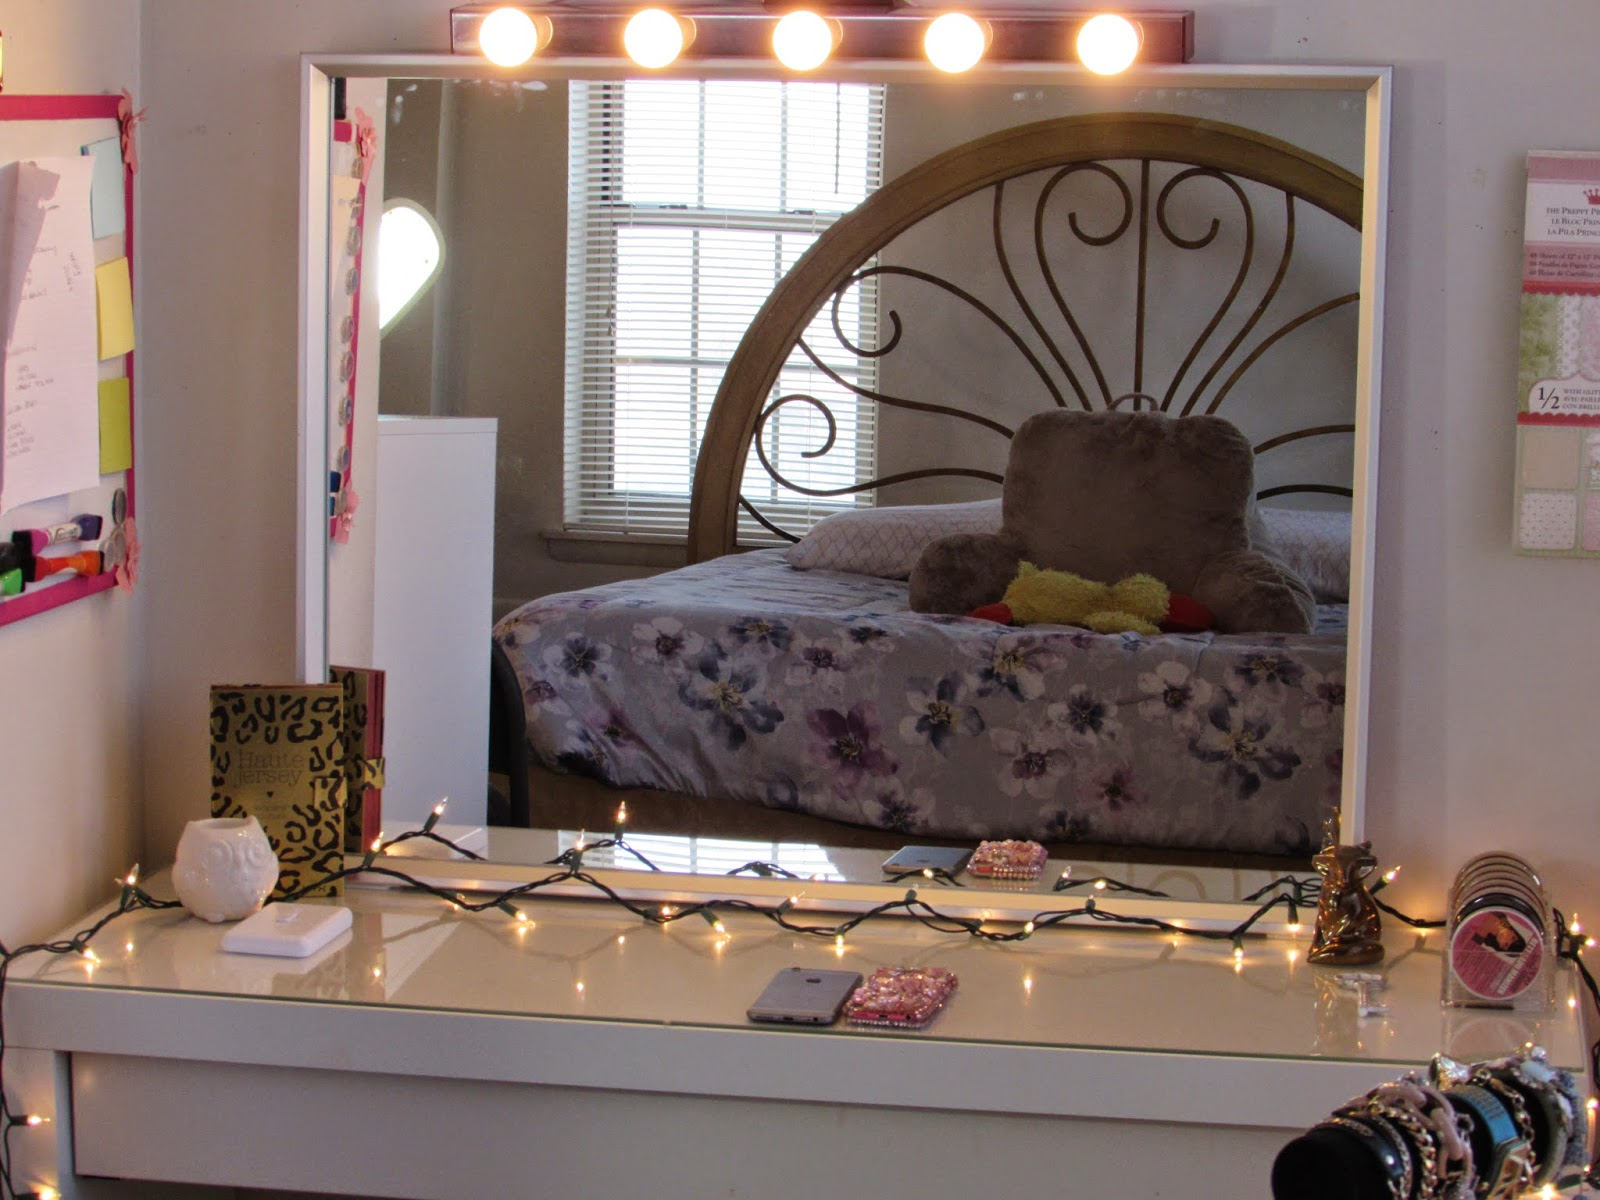 Beauty By Genecia DIY Hollywood Vanity Light Mirror  DIY Room